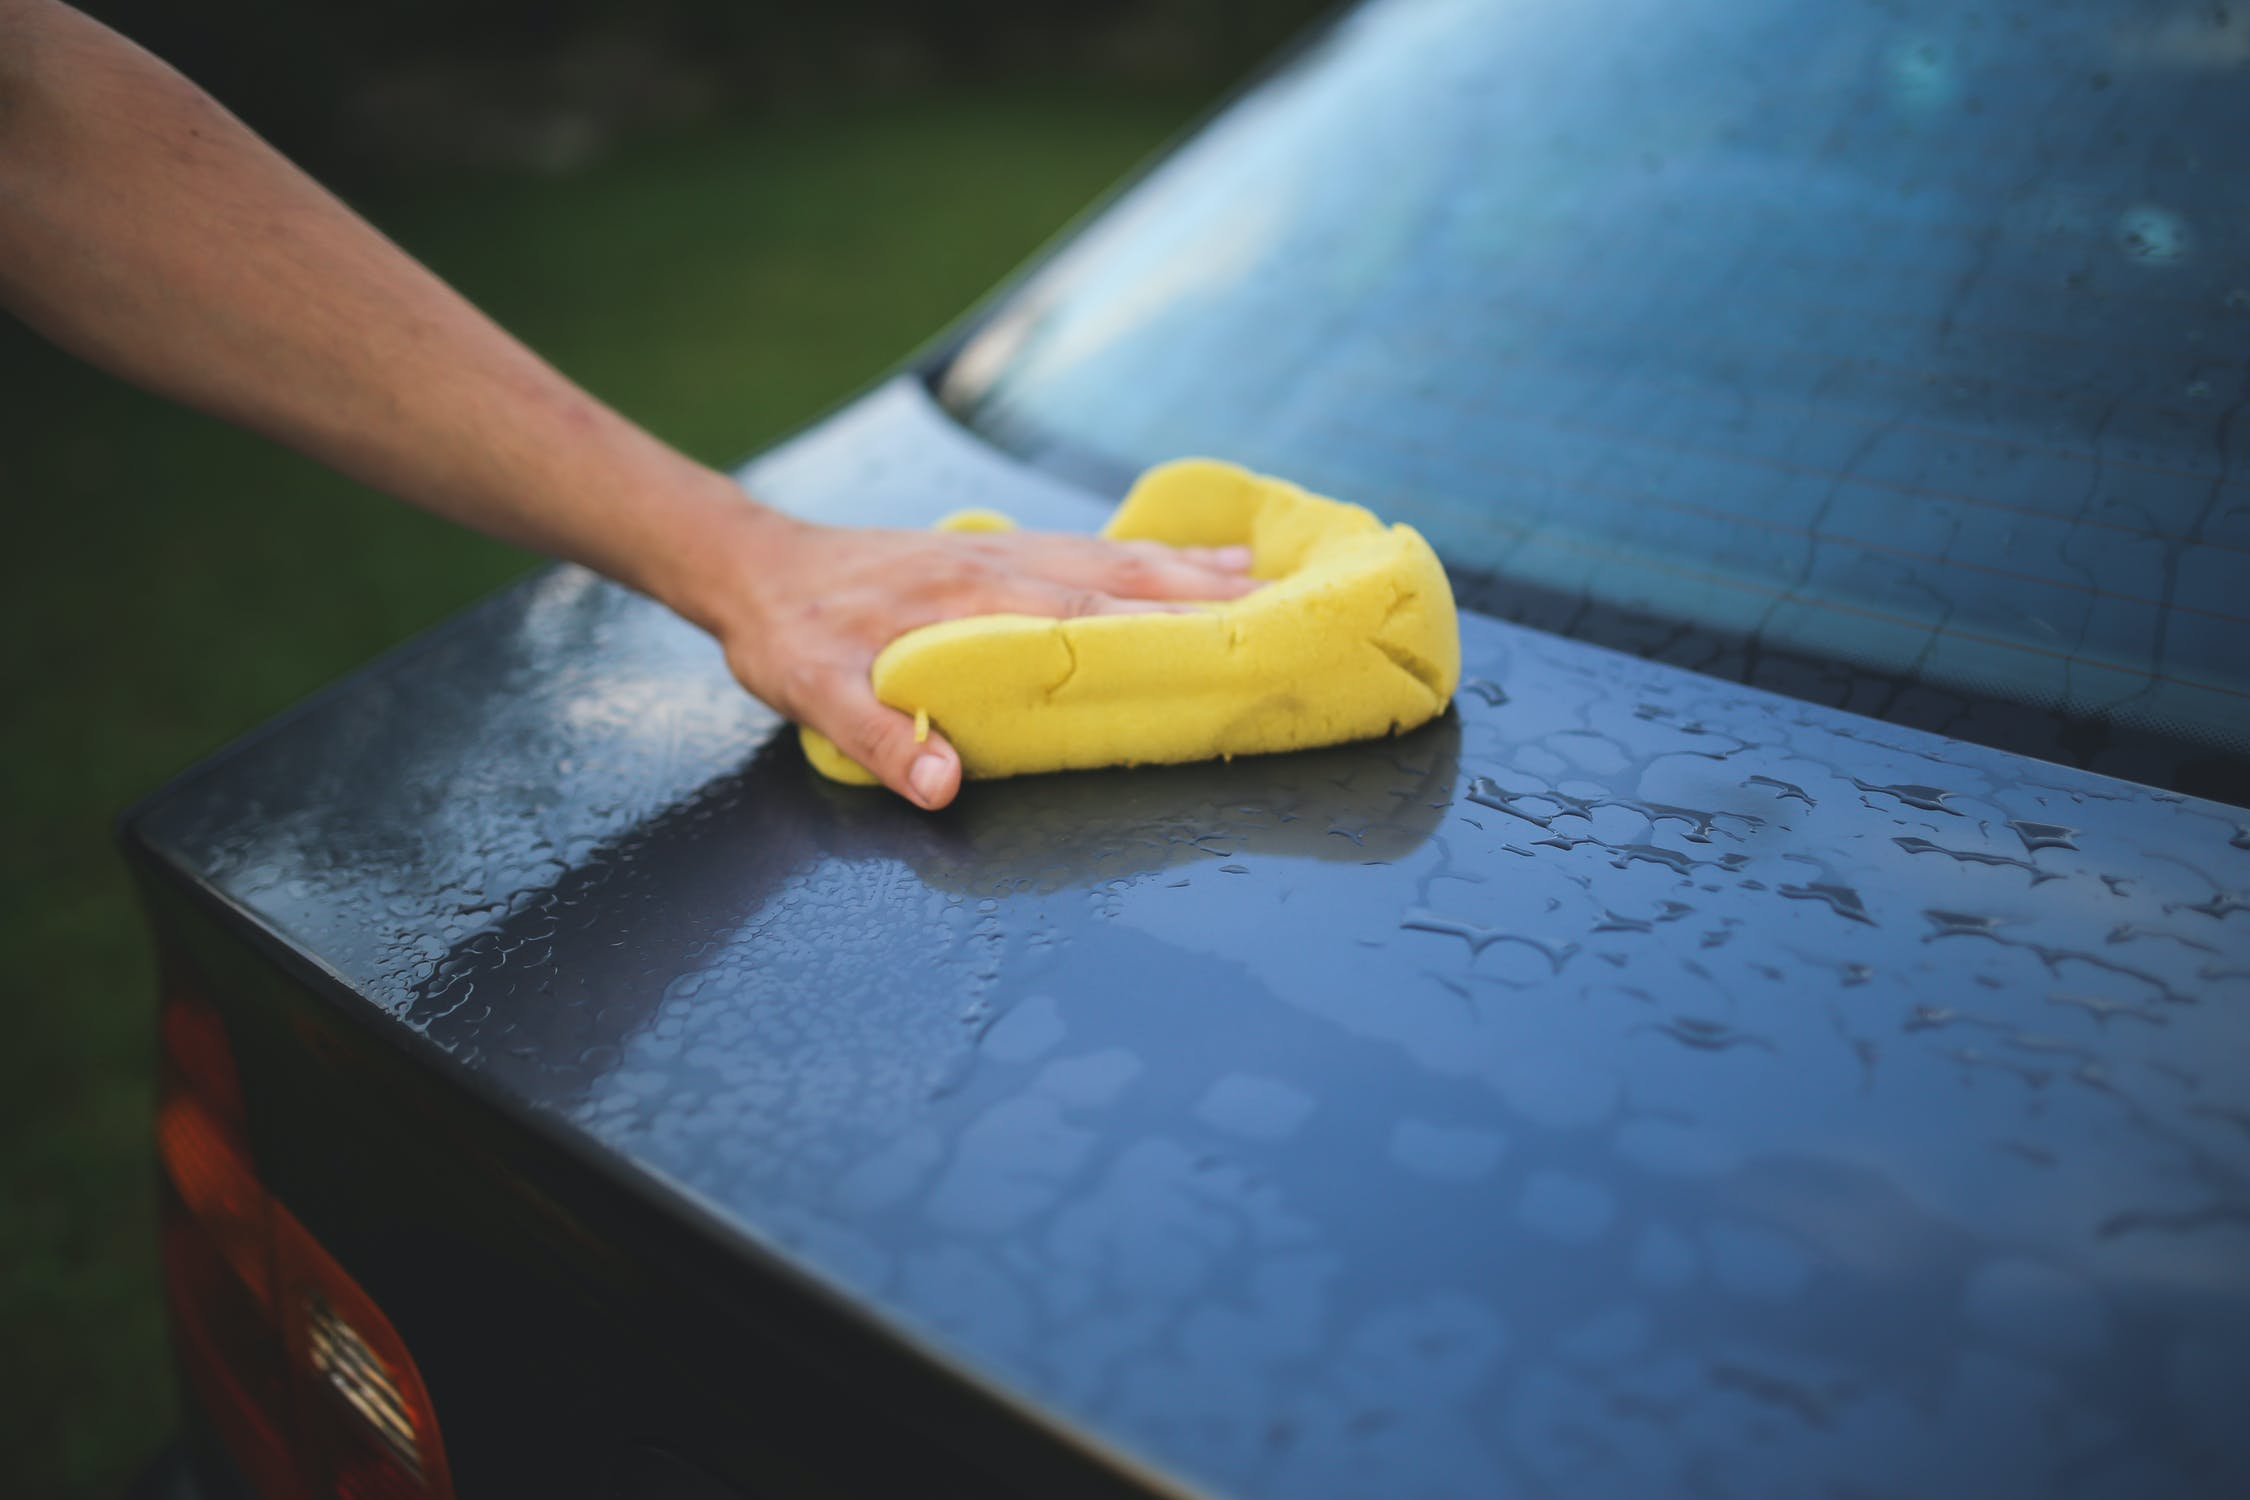 A person cleaning their car.